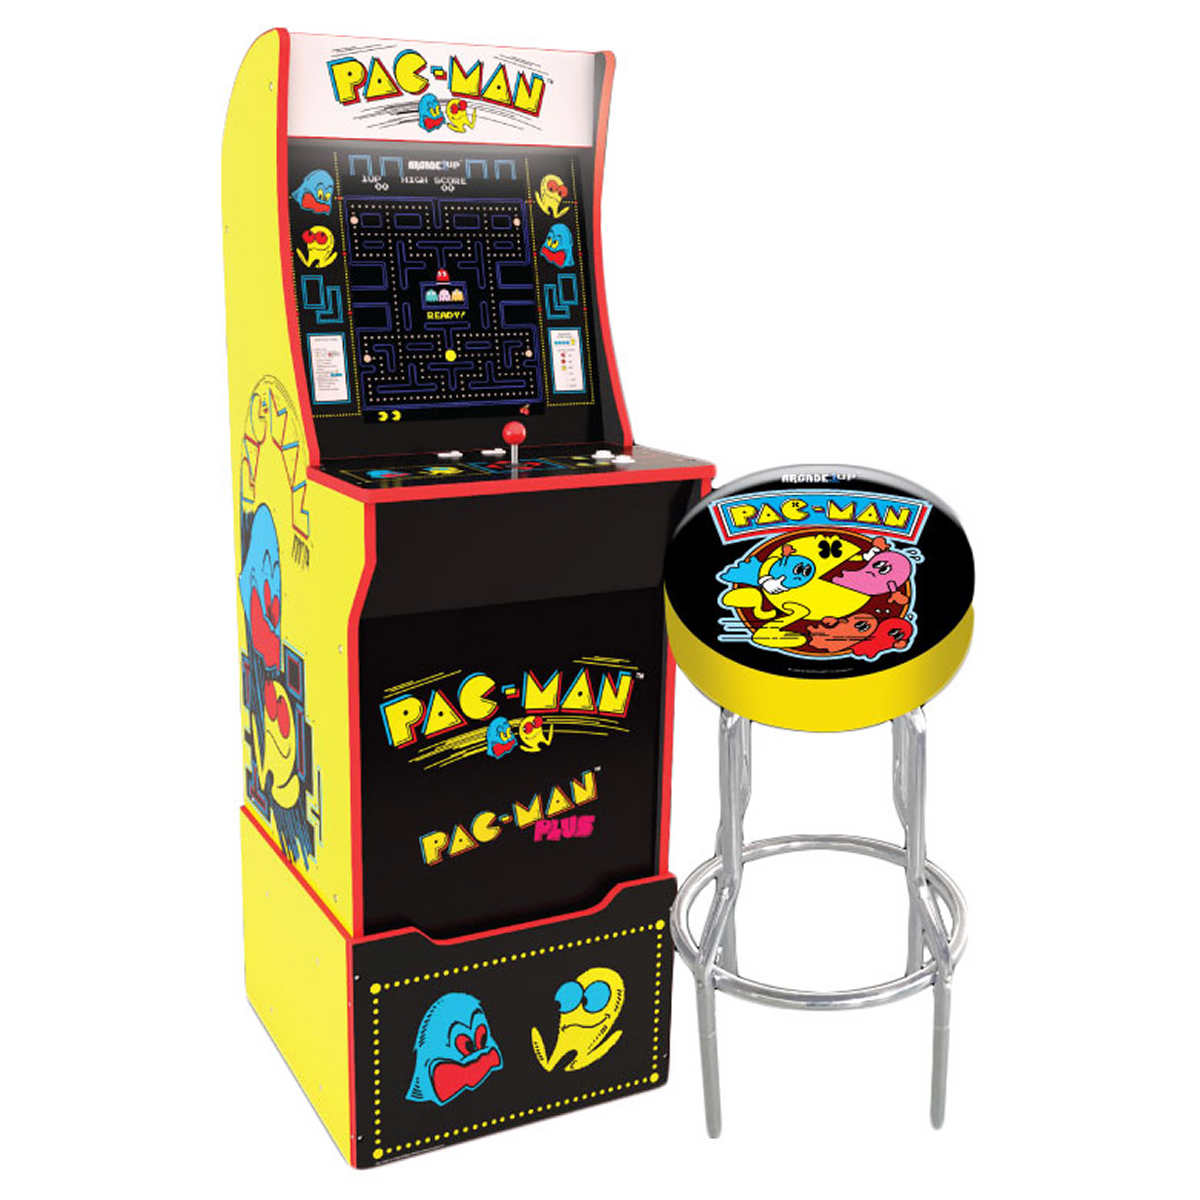 Arcade1up Mini Pac Man Arcade Cabinet With Riser Stool And